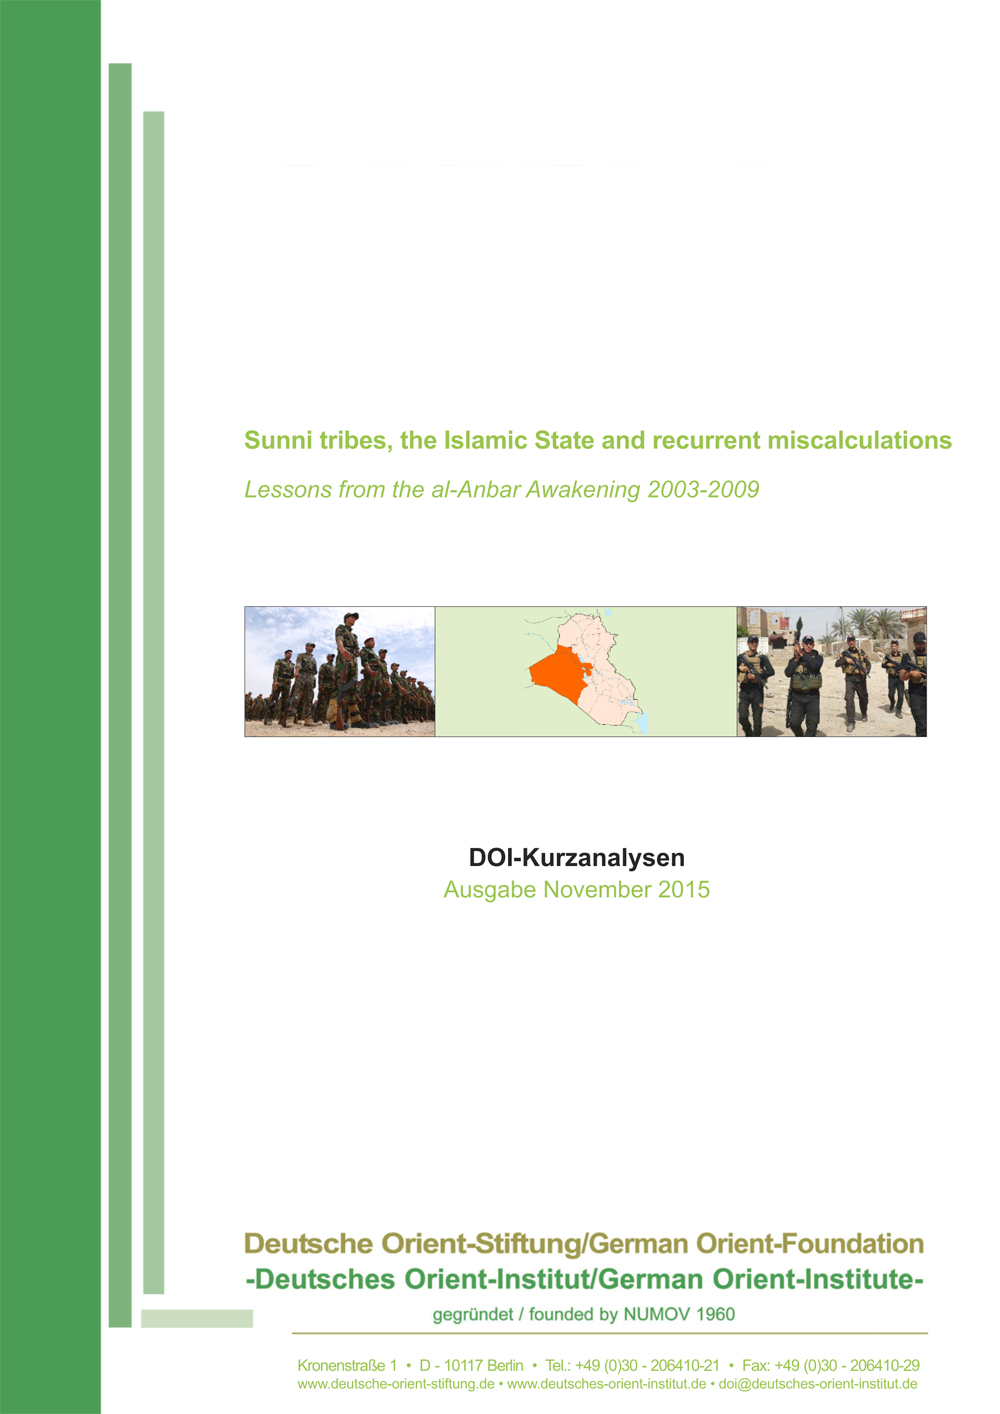 """Featured image for """"Sunni tribes, the Islamic State and recurrent miscalculations: Lessons from the al-Anbar Awakening 2003-2009"""""""